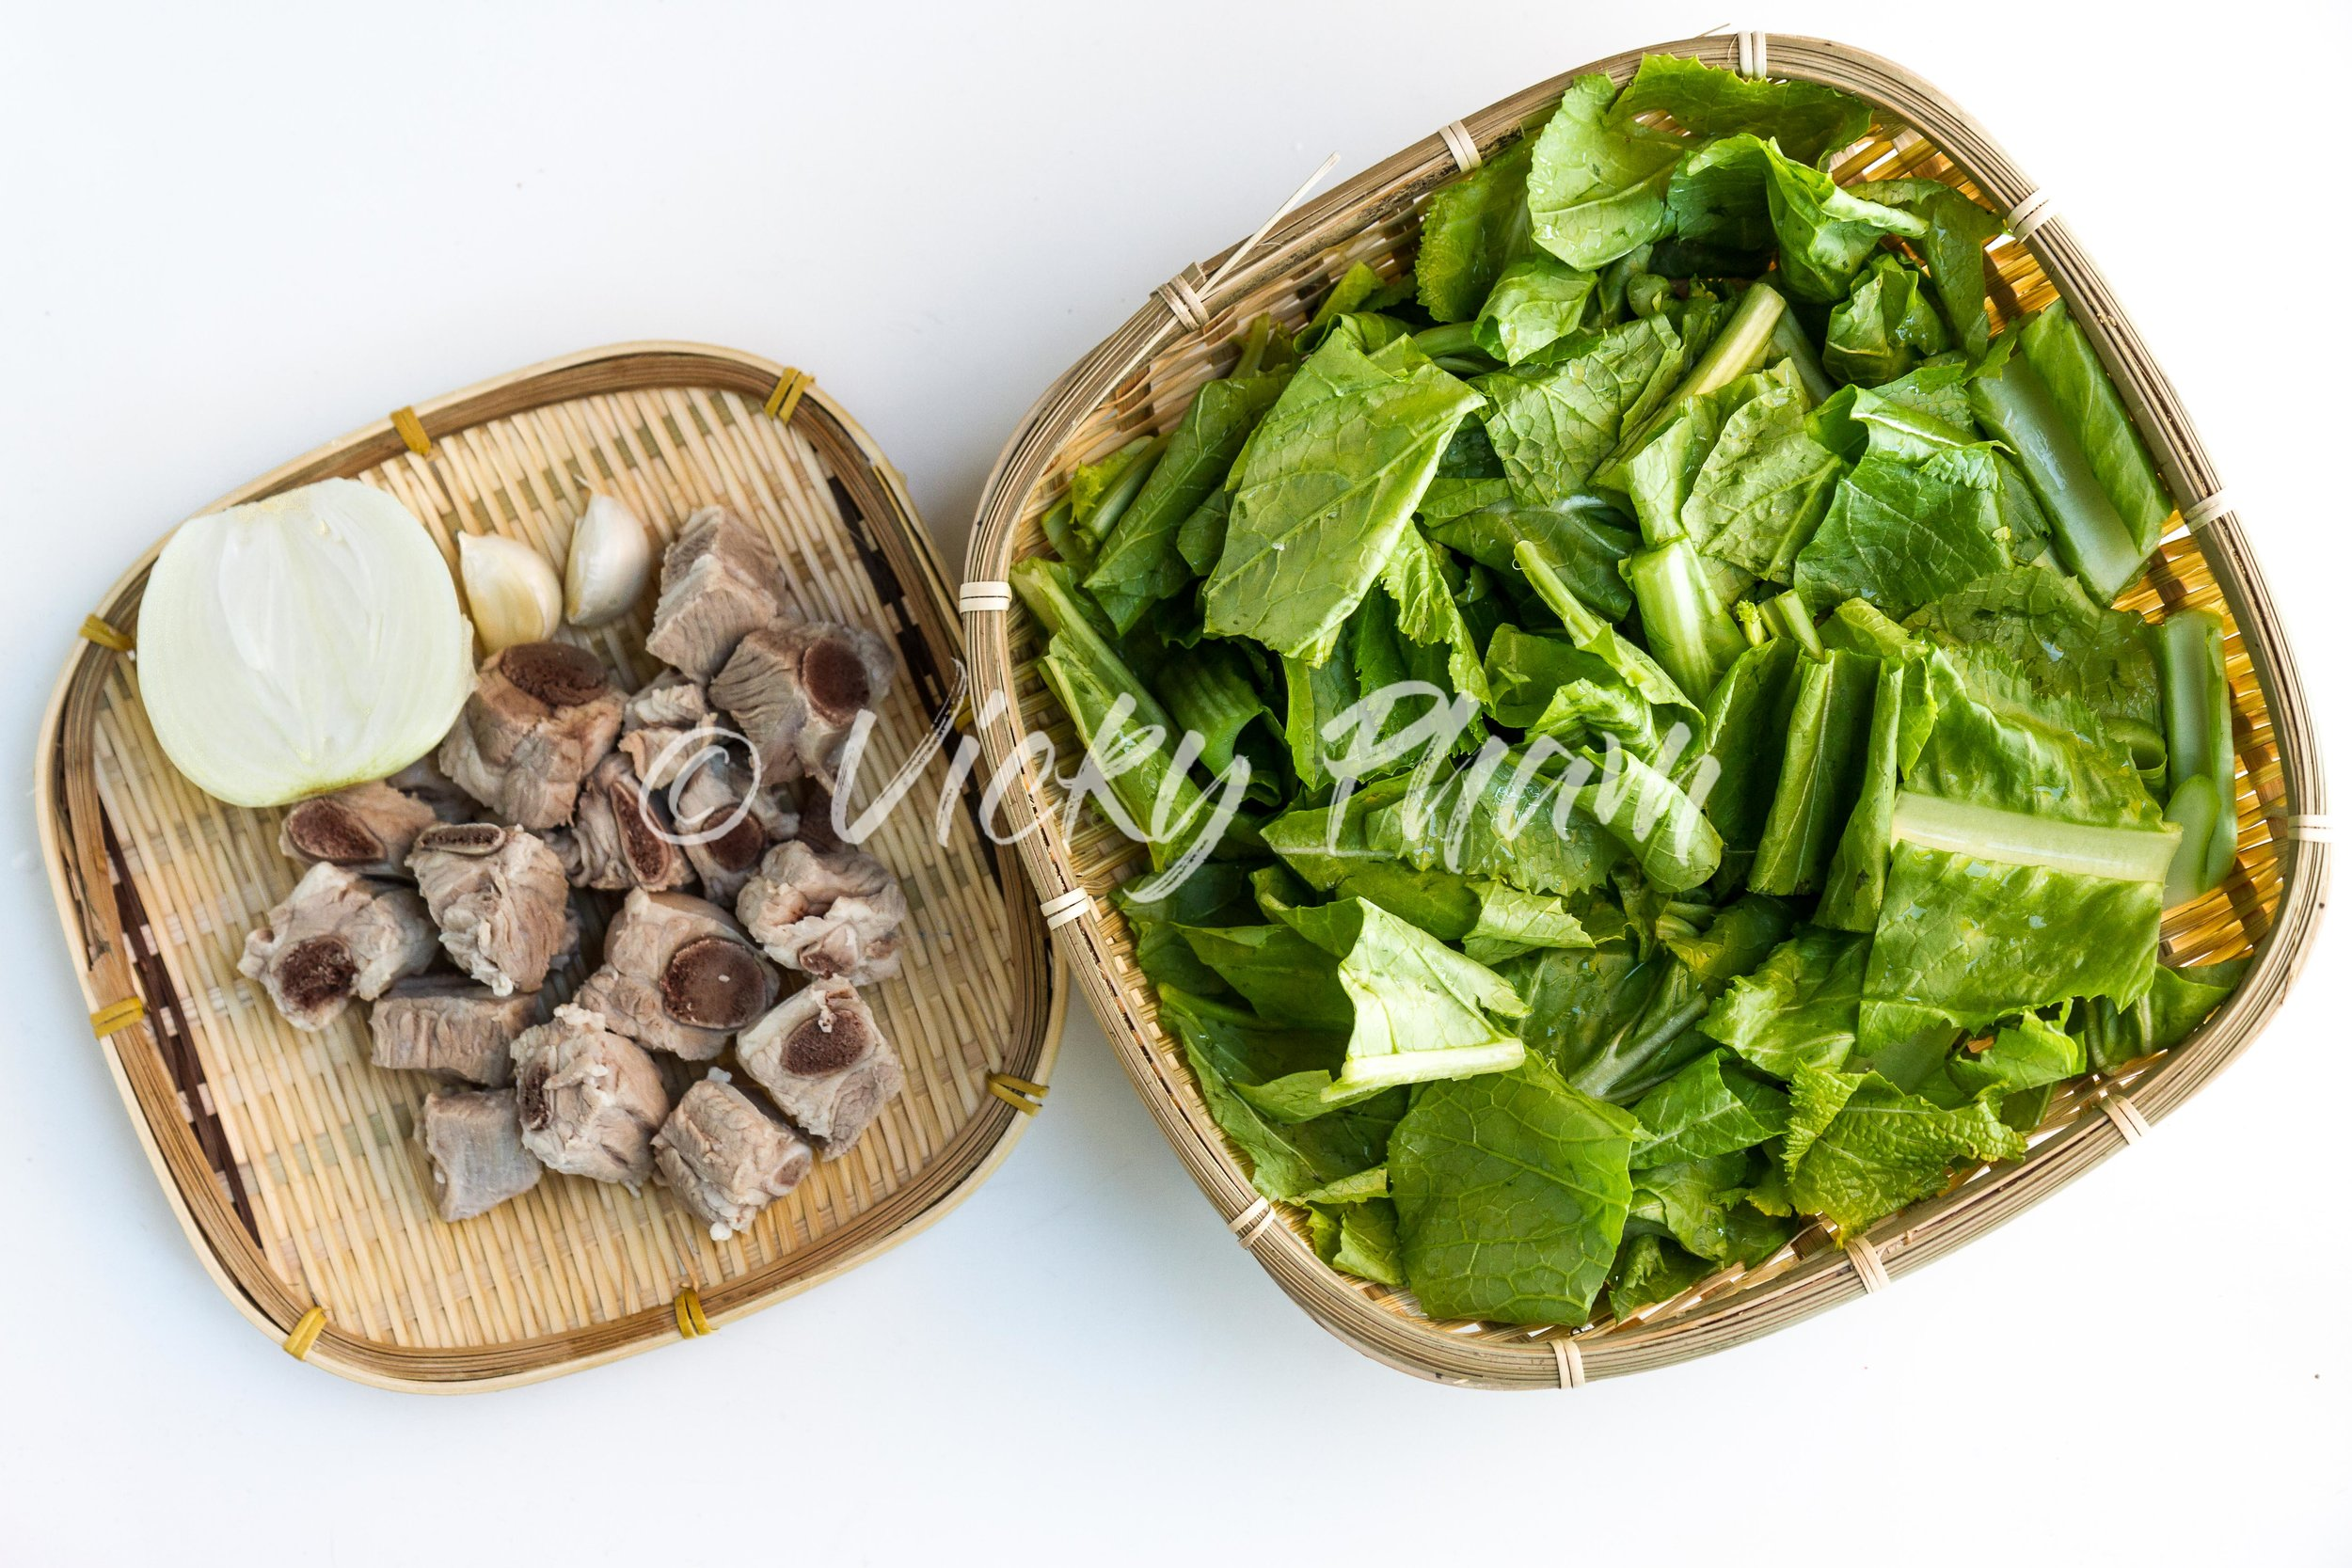 Ingredients for Vietnamese Mustard Green Soup (Canh Cai Be Xanh)